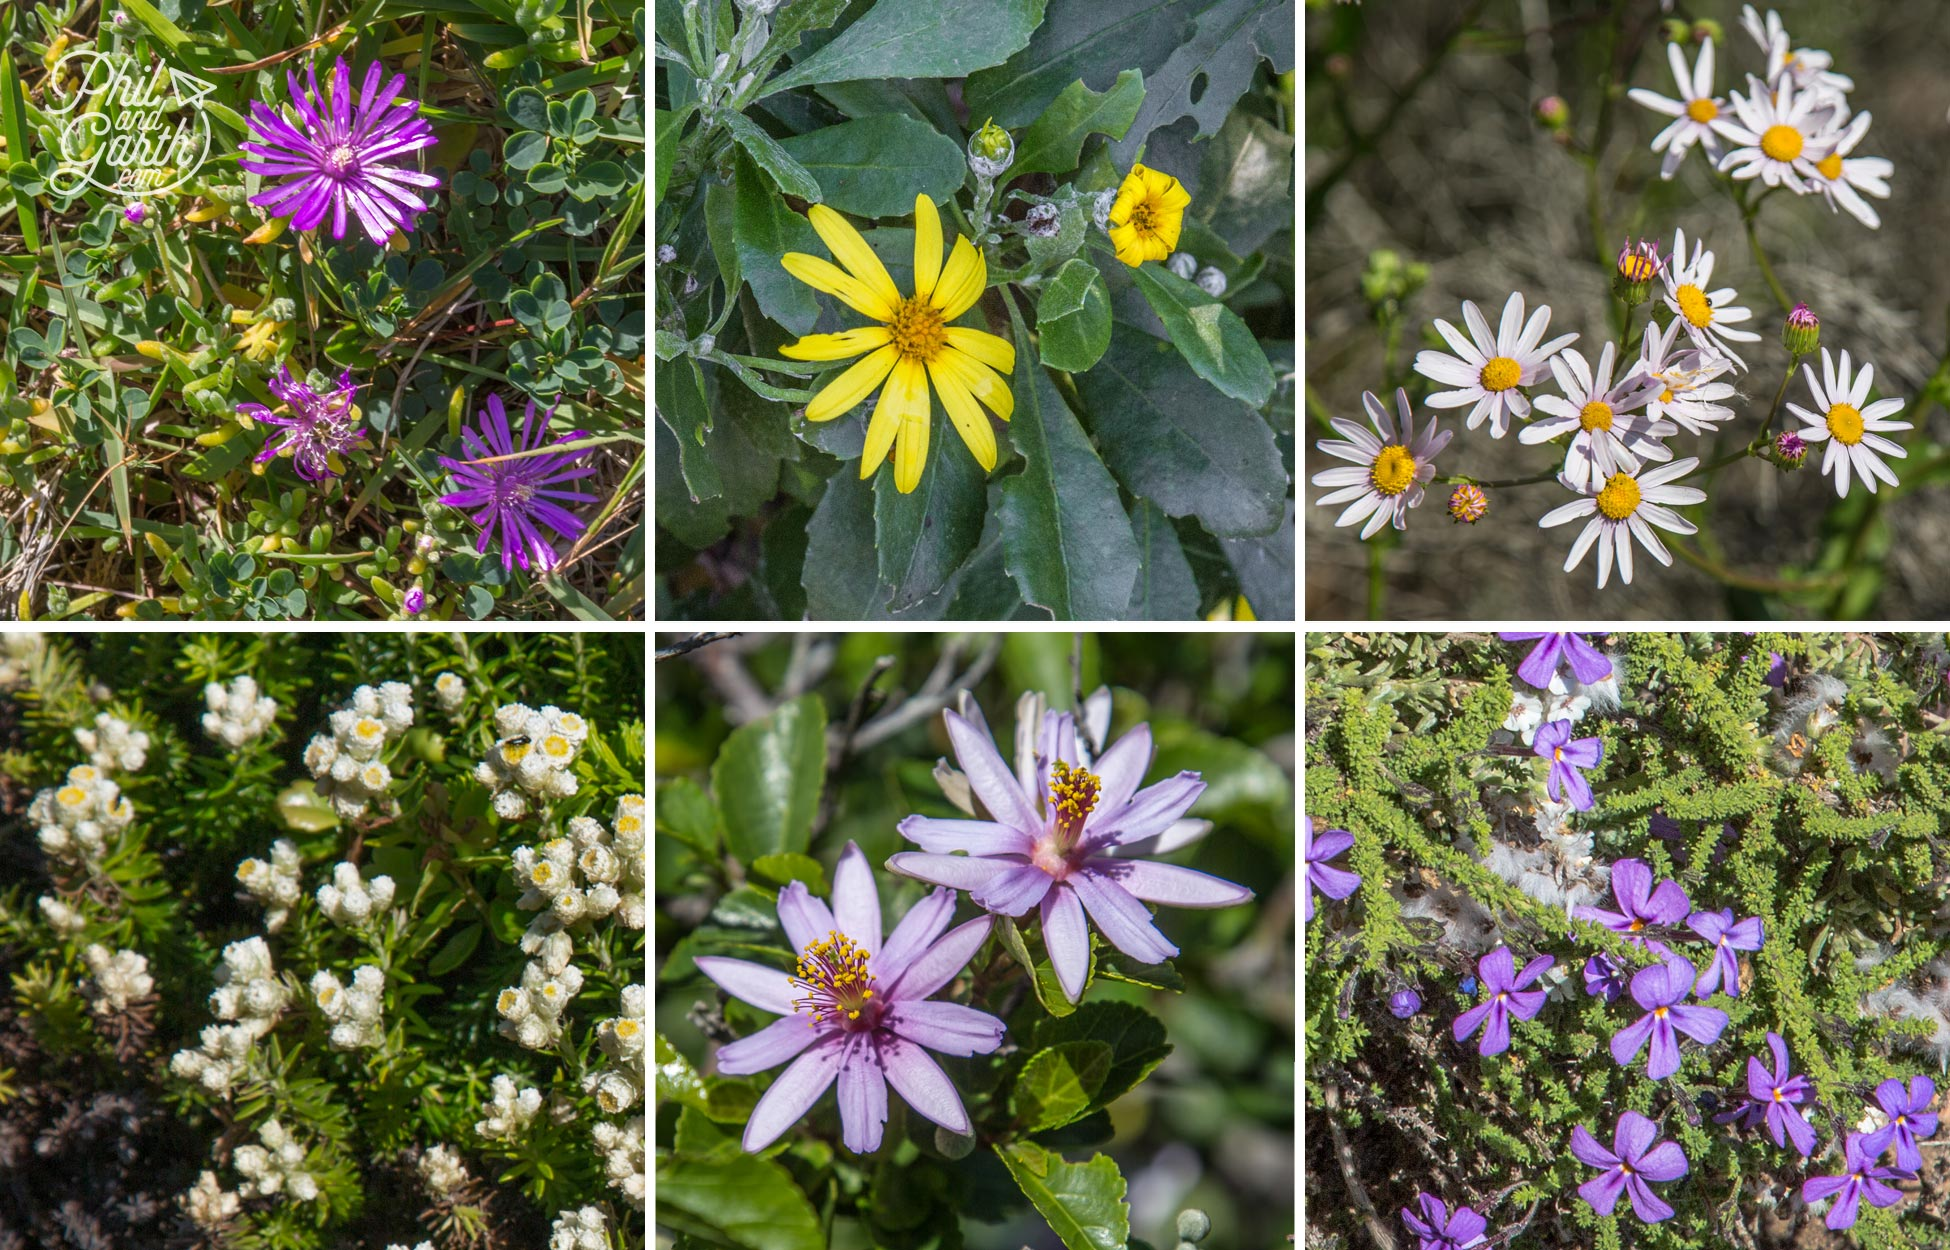 Some of the colourful fynbos flowers along the coast